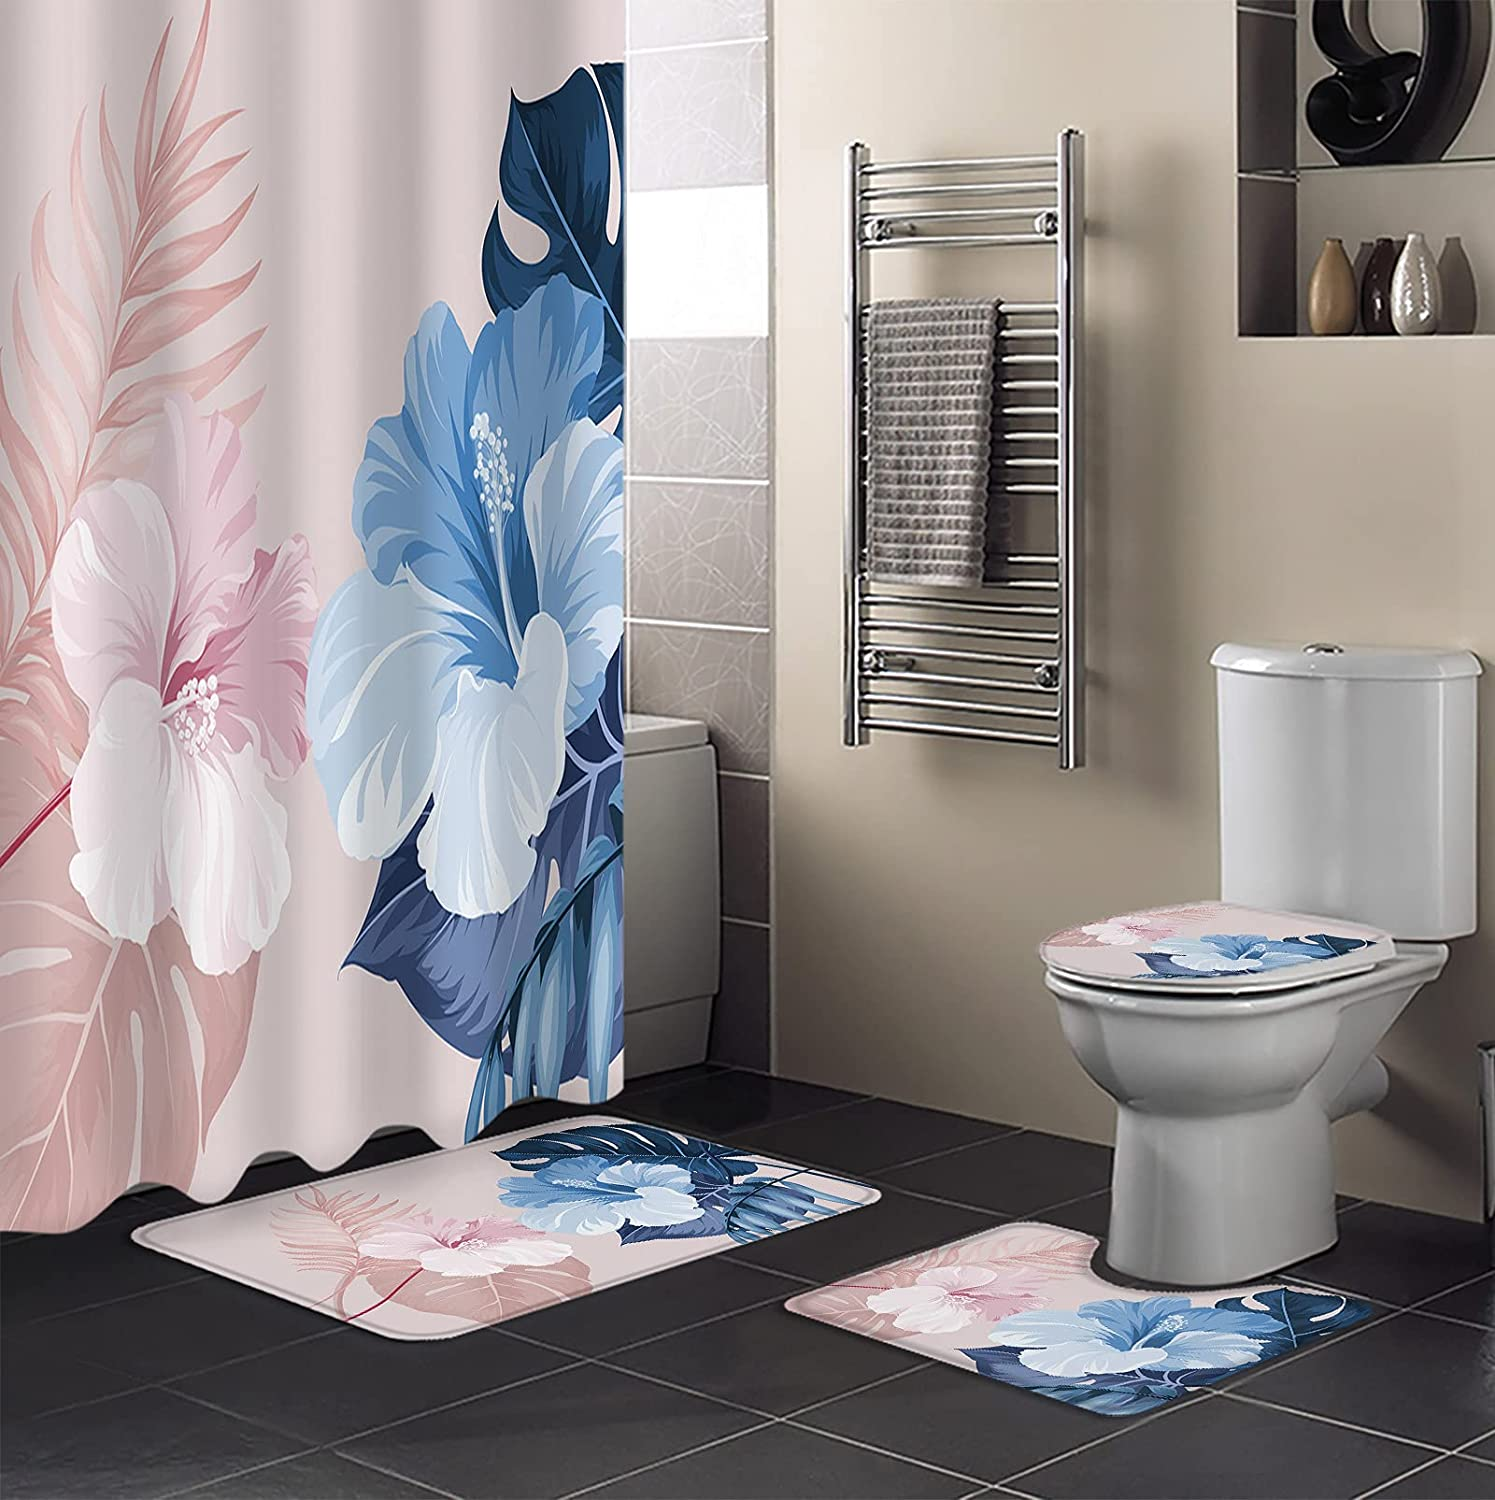 4 PCS 2021new shipping free shipping Shower Curtain Sets Bathroom Super Special SALE held Waterproof with Non-Sli